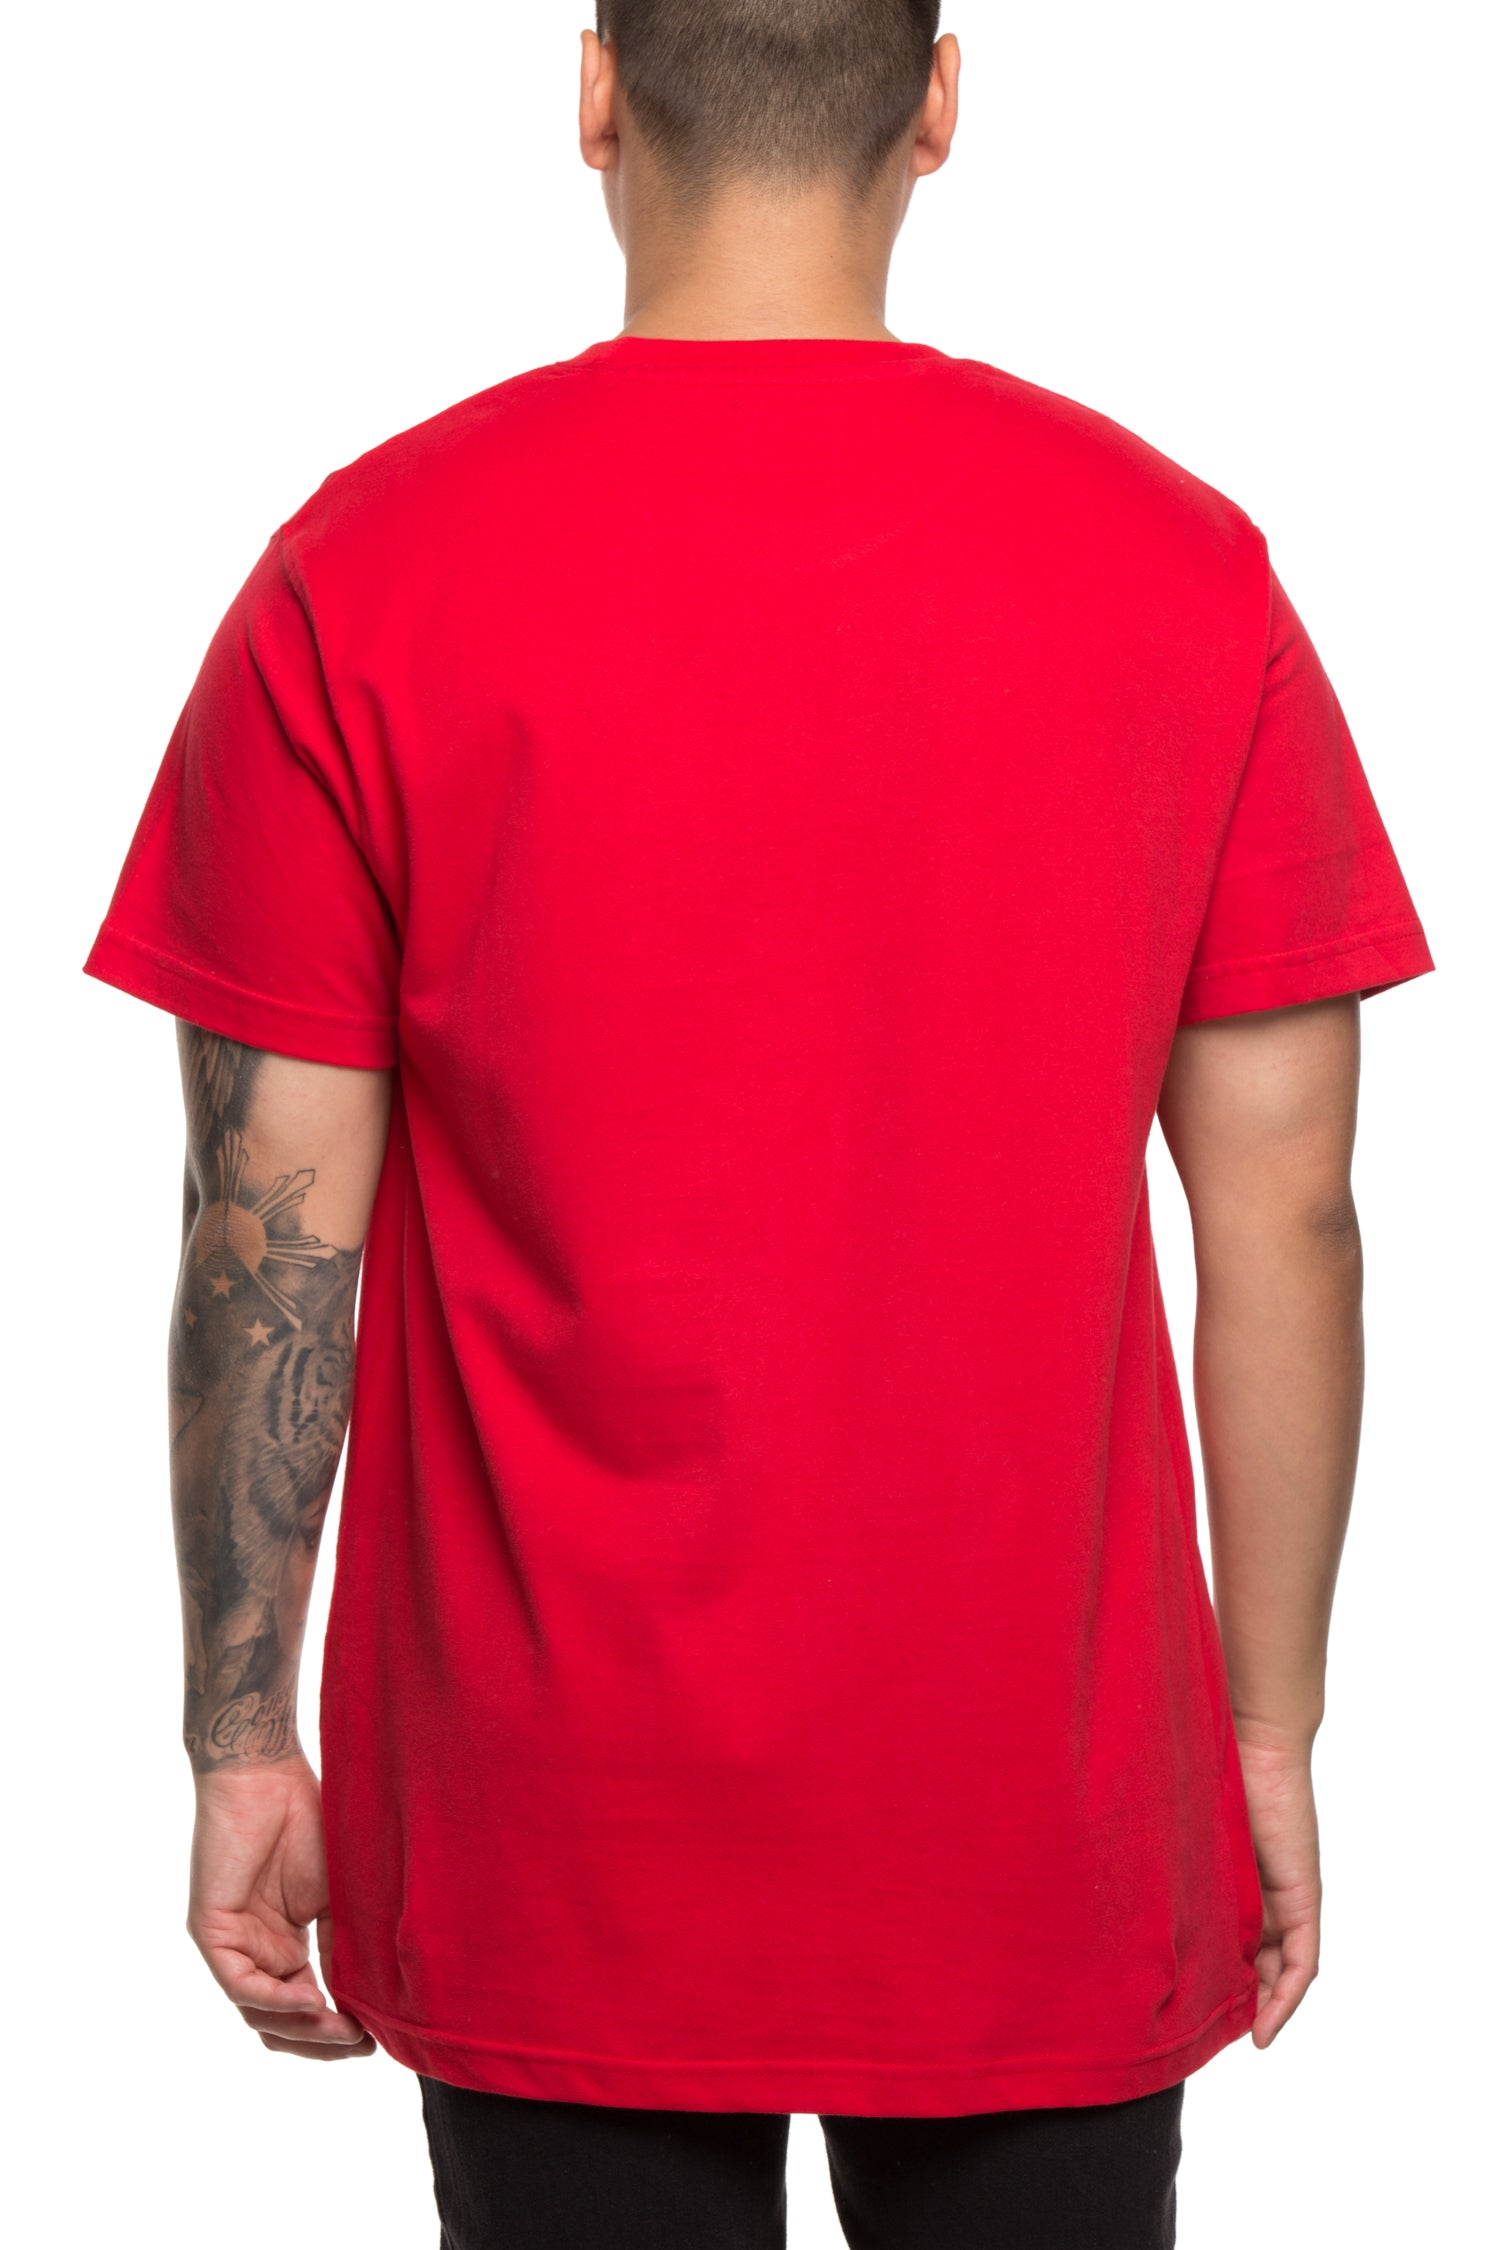 LOITER NYC TEE - Red